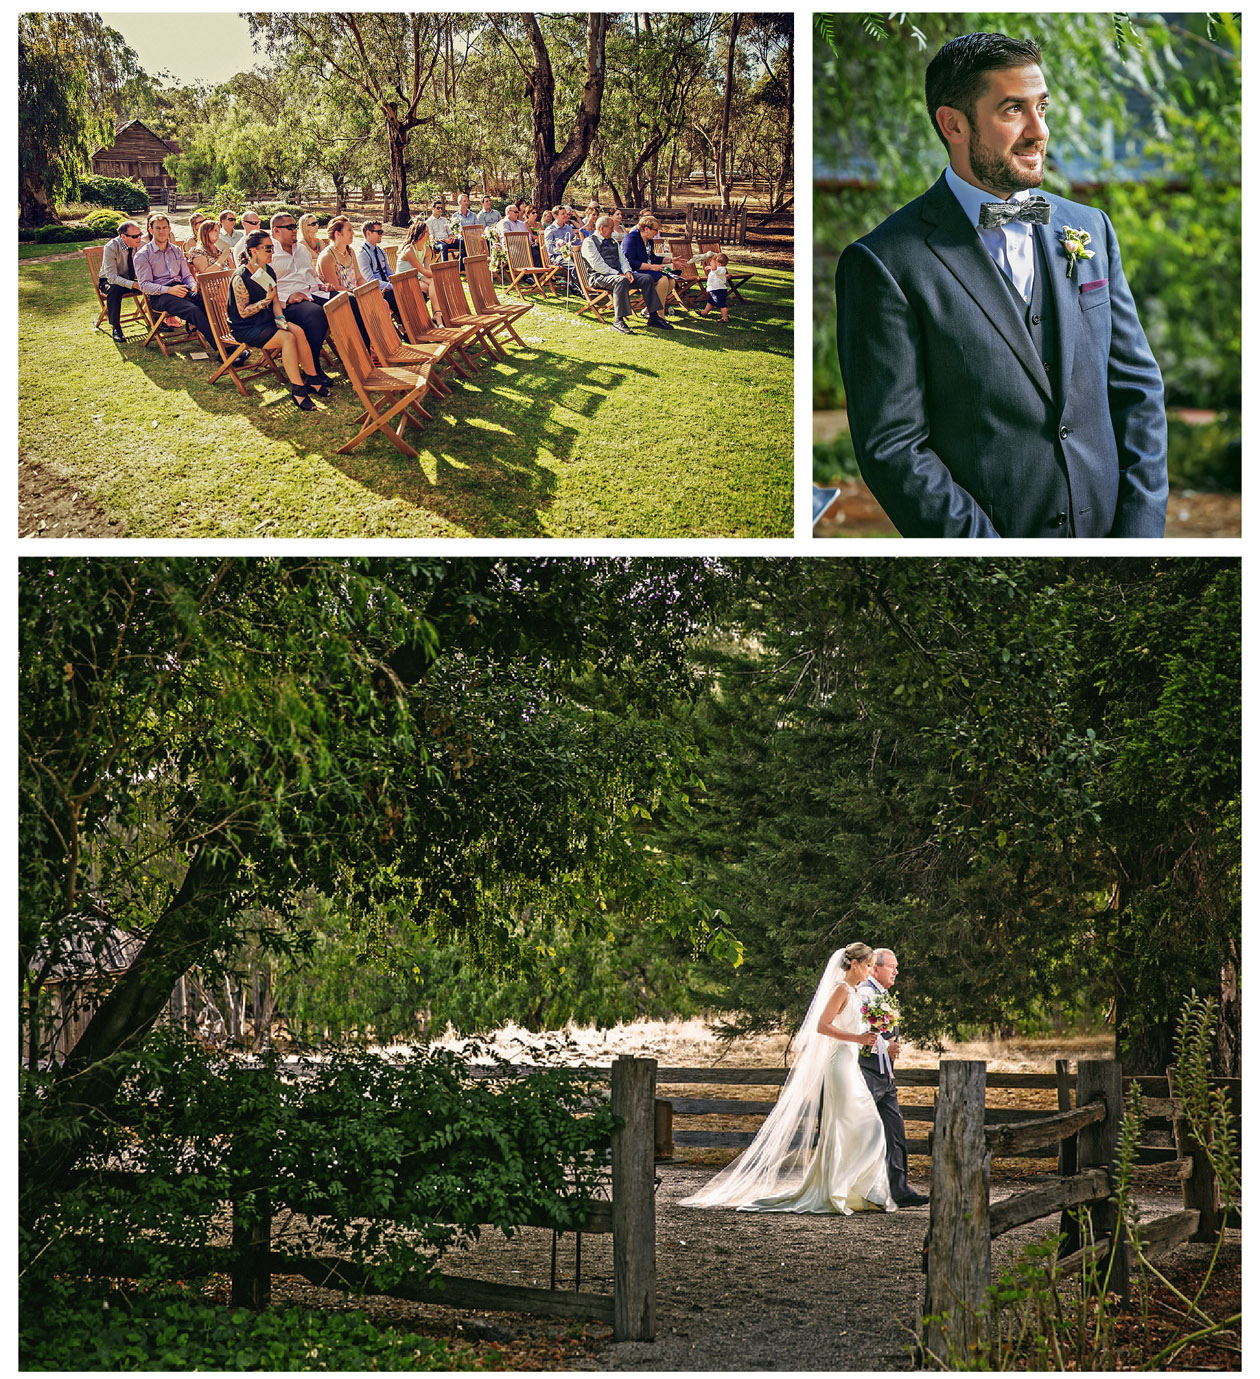 The groom and his guests are waiting for the beautiful bride to enter the wedding ceremony at Emu Bottom Homestead